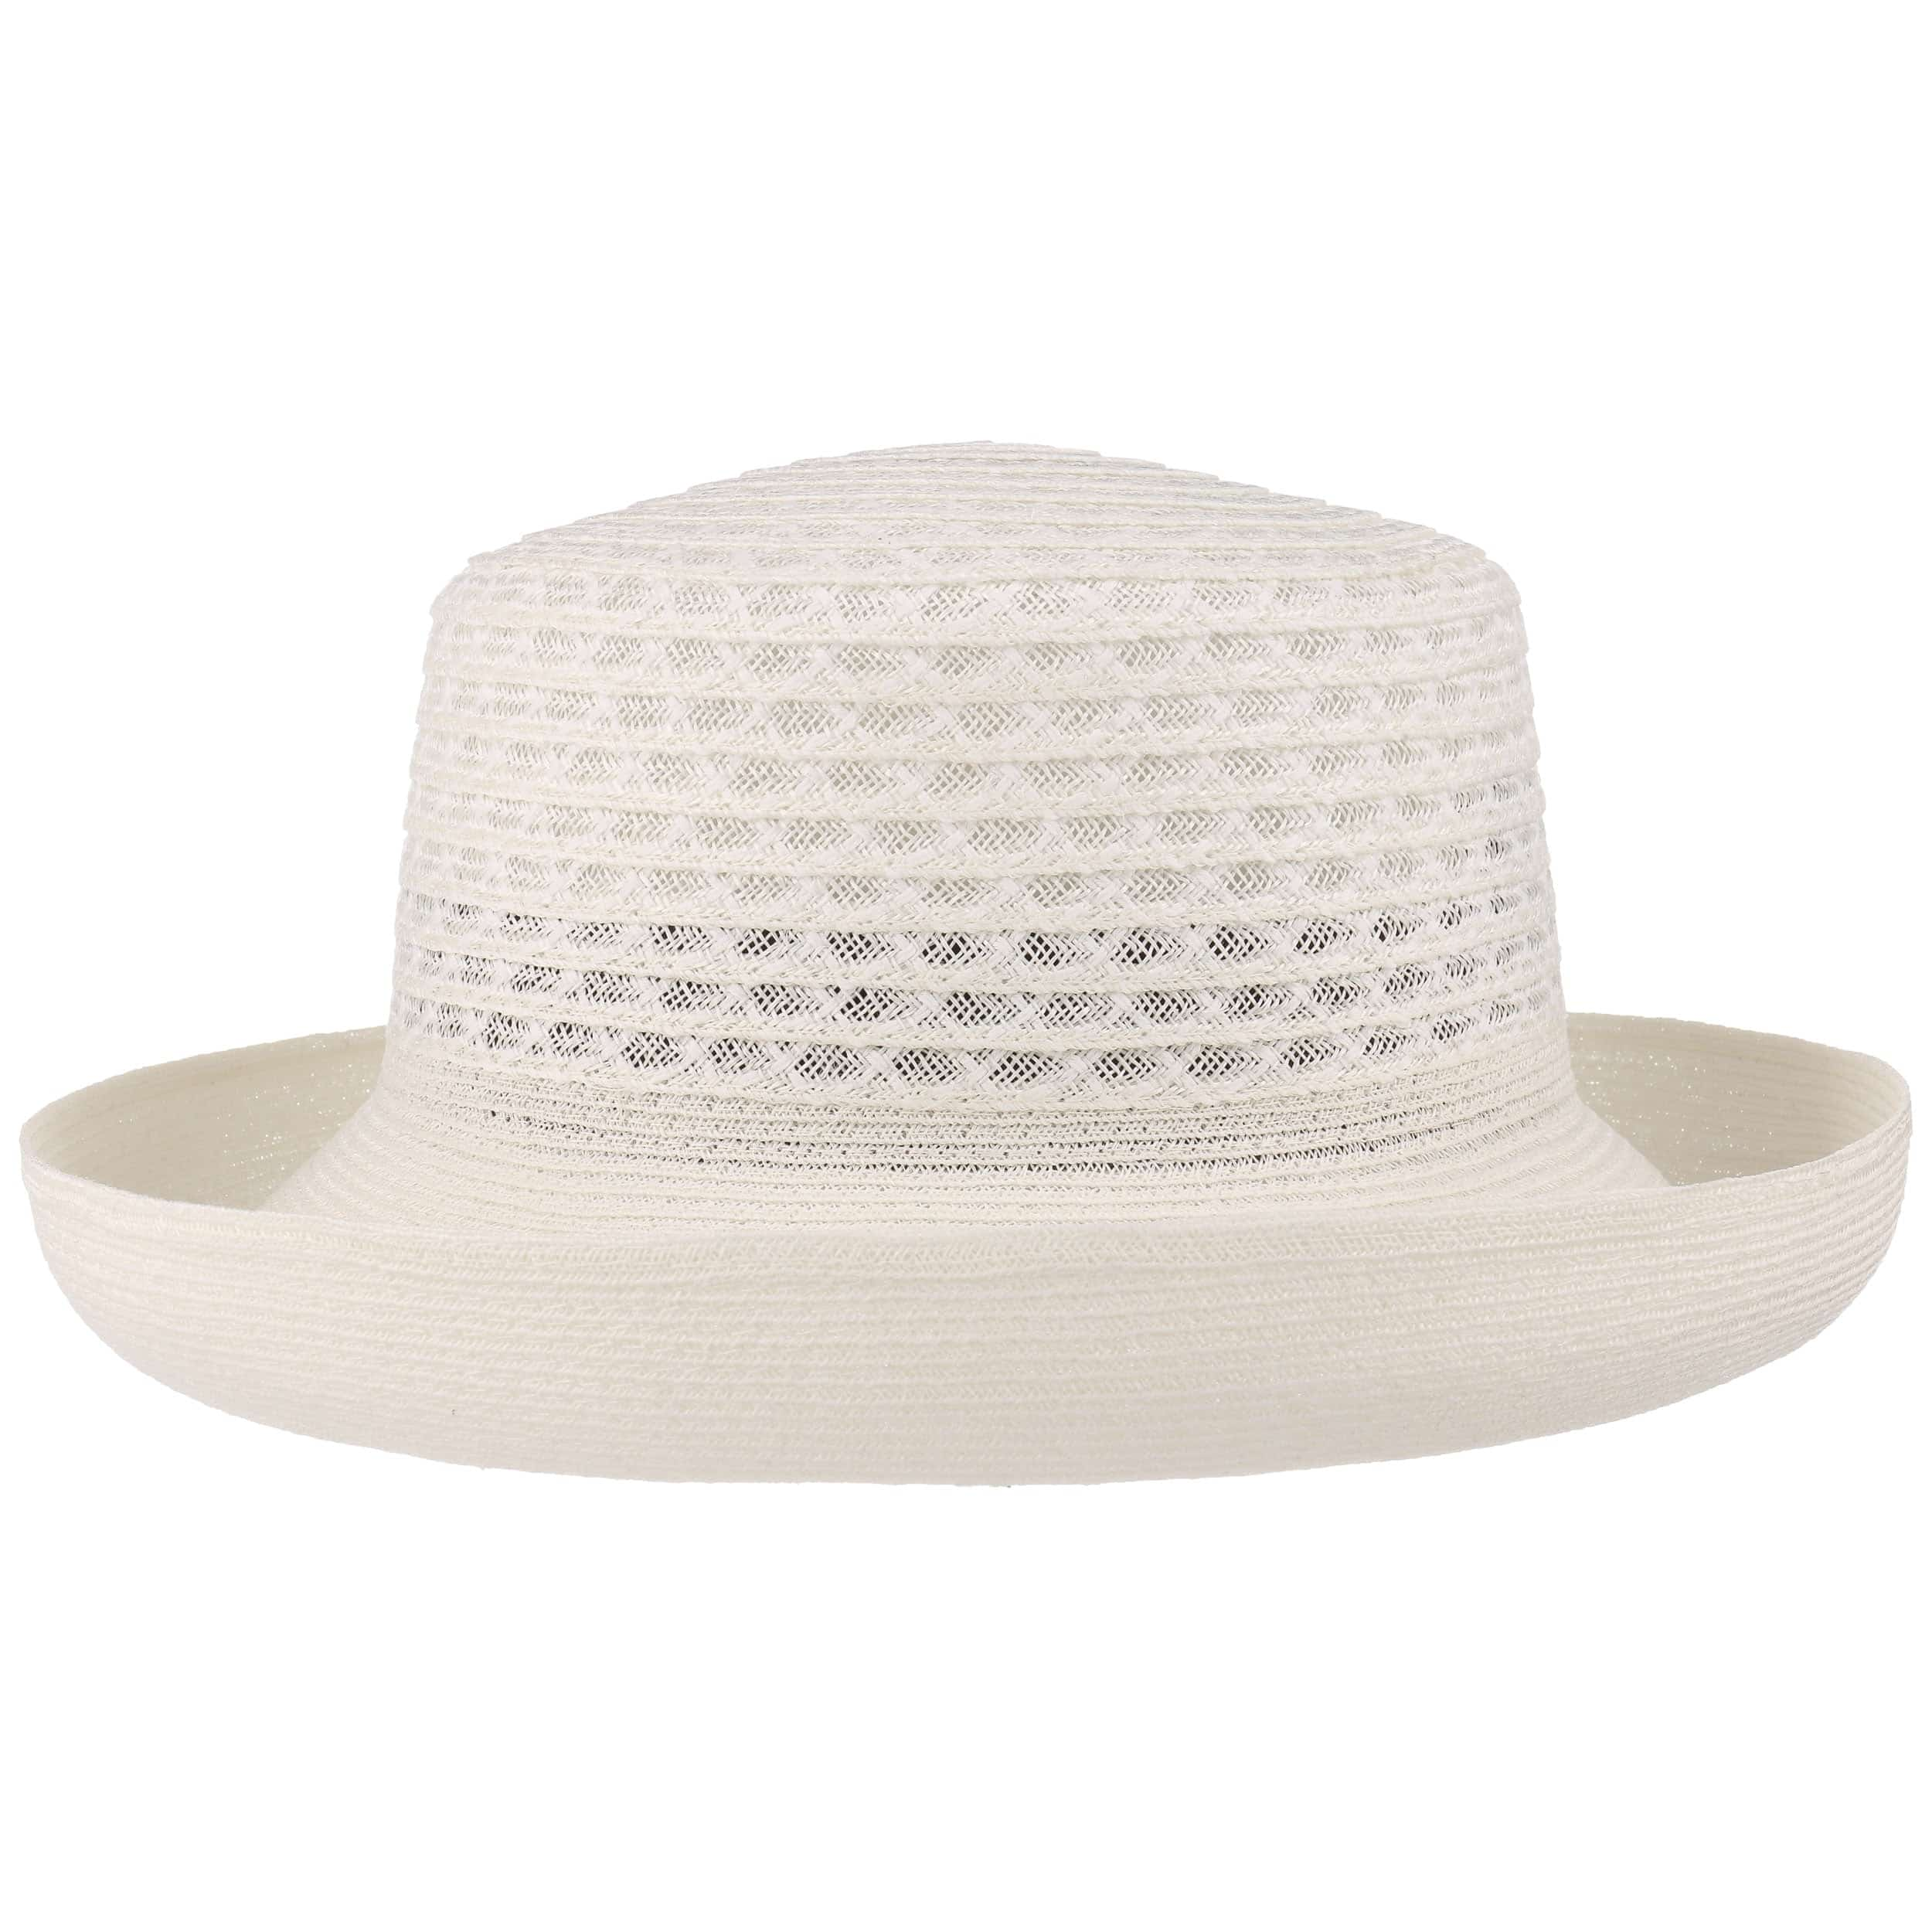 Jennifer Upward Brimmed Hat by Lierys Sun hats Lierys